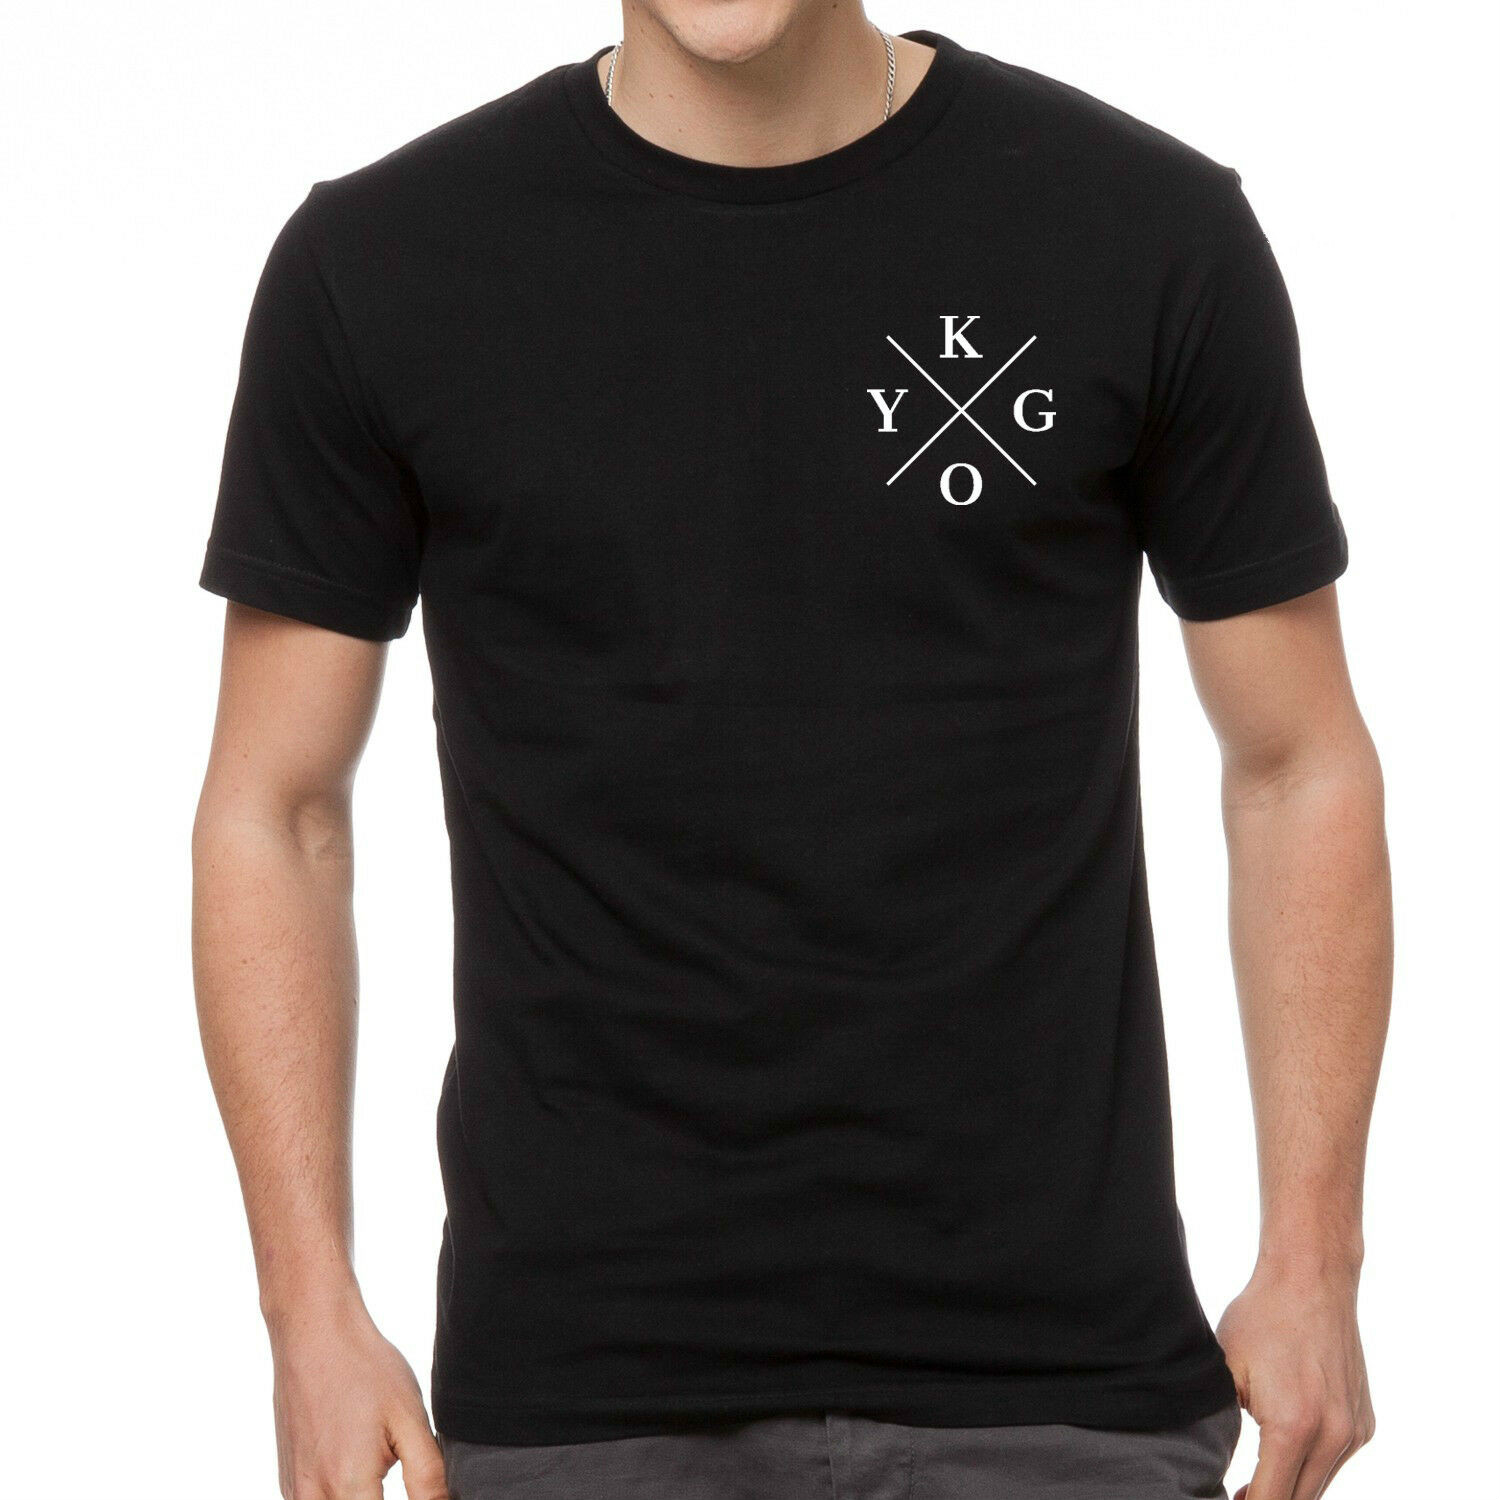 Kygo Print Mens Black T-Shirt 100% Cotton Graphic Tee Edm Music Festival Unisex Size S-3Xl image